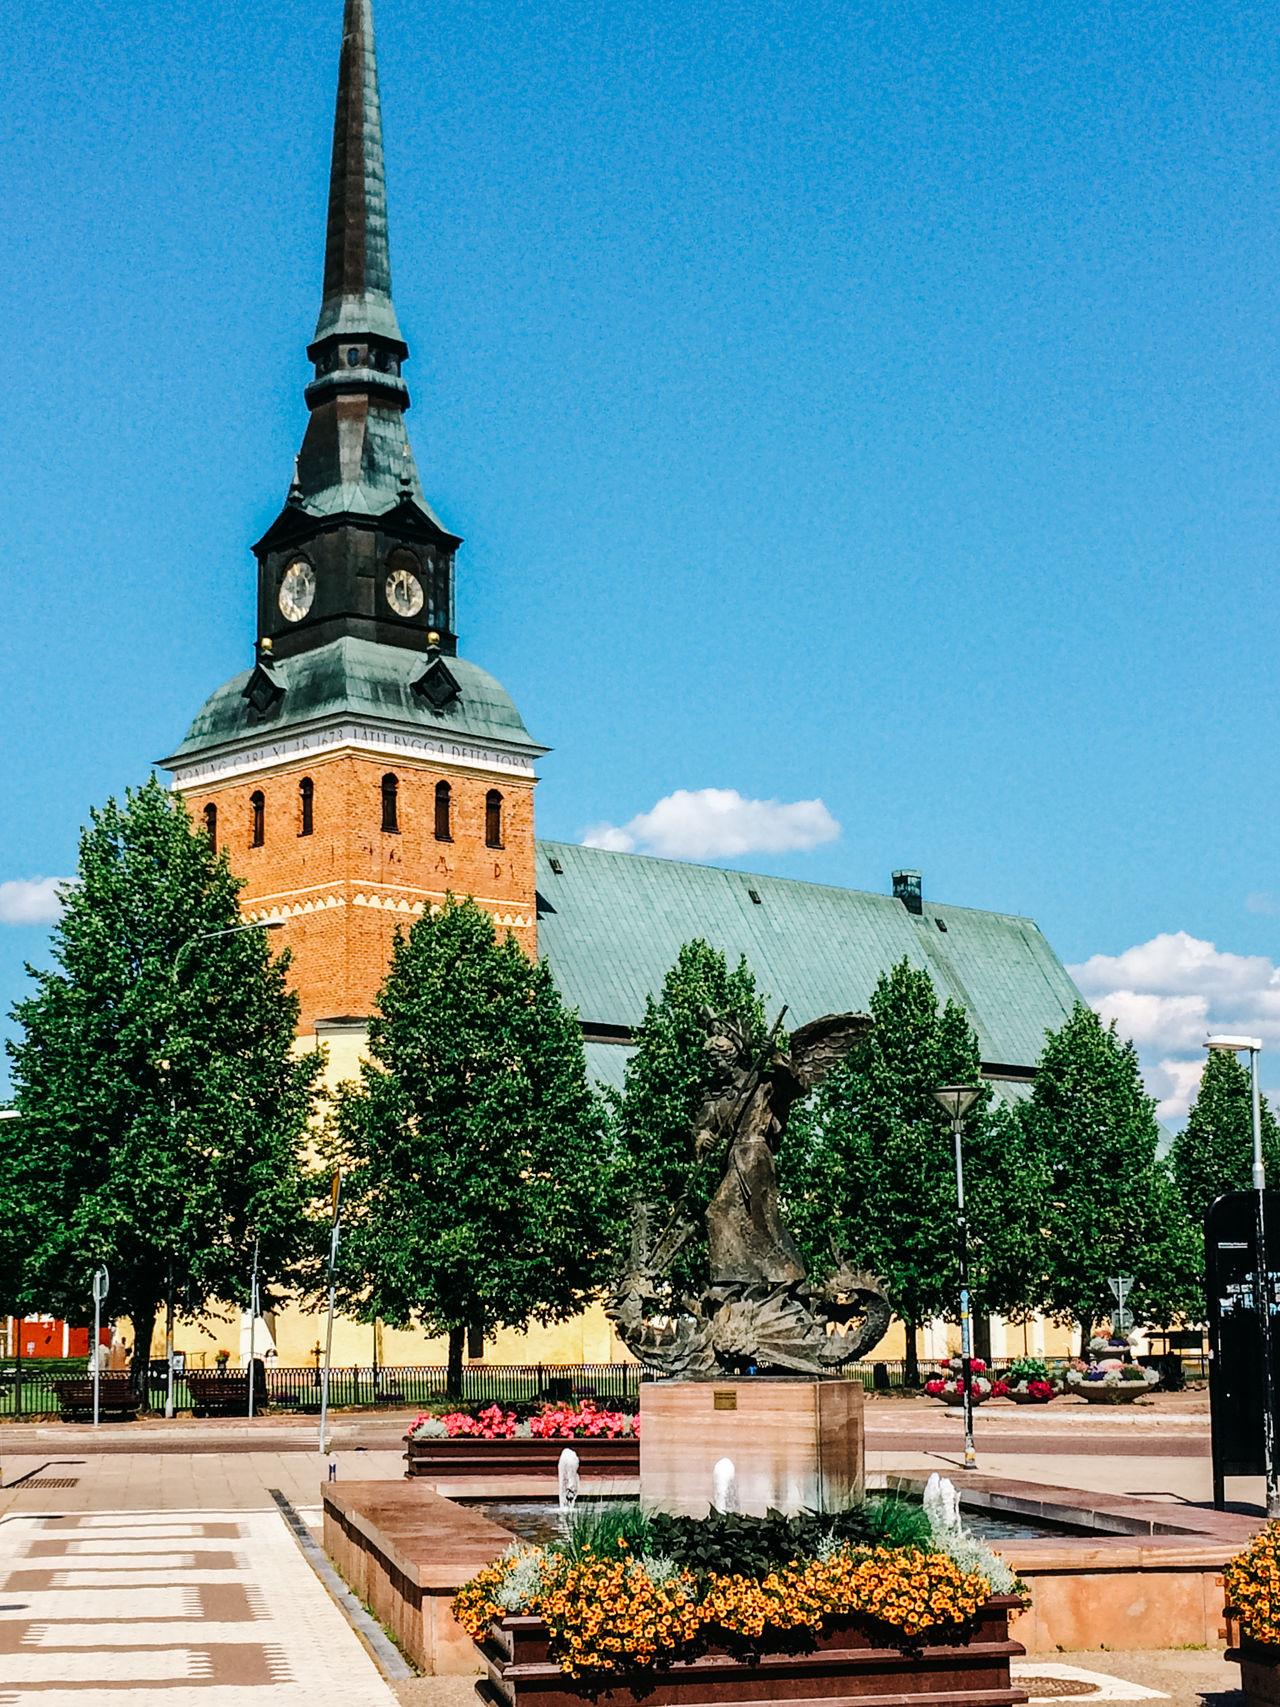 Town square and church, Mora, Sweden Architecture Building Exterior Built Structure Church Clear Sky Clock Tower Dalarna Façade Famous Place Low Angle View Outdoors Place Of Worship Religion Scandinavia Spirituality Summer Swedish Tower Town Square